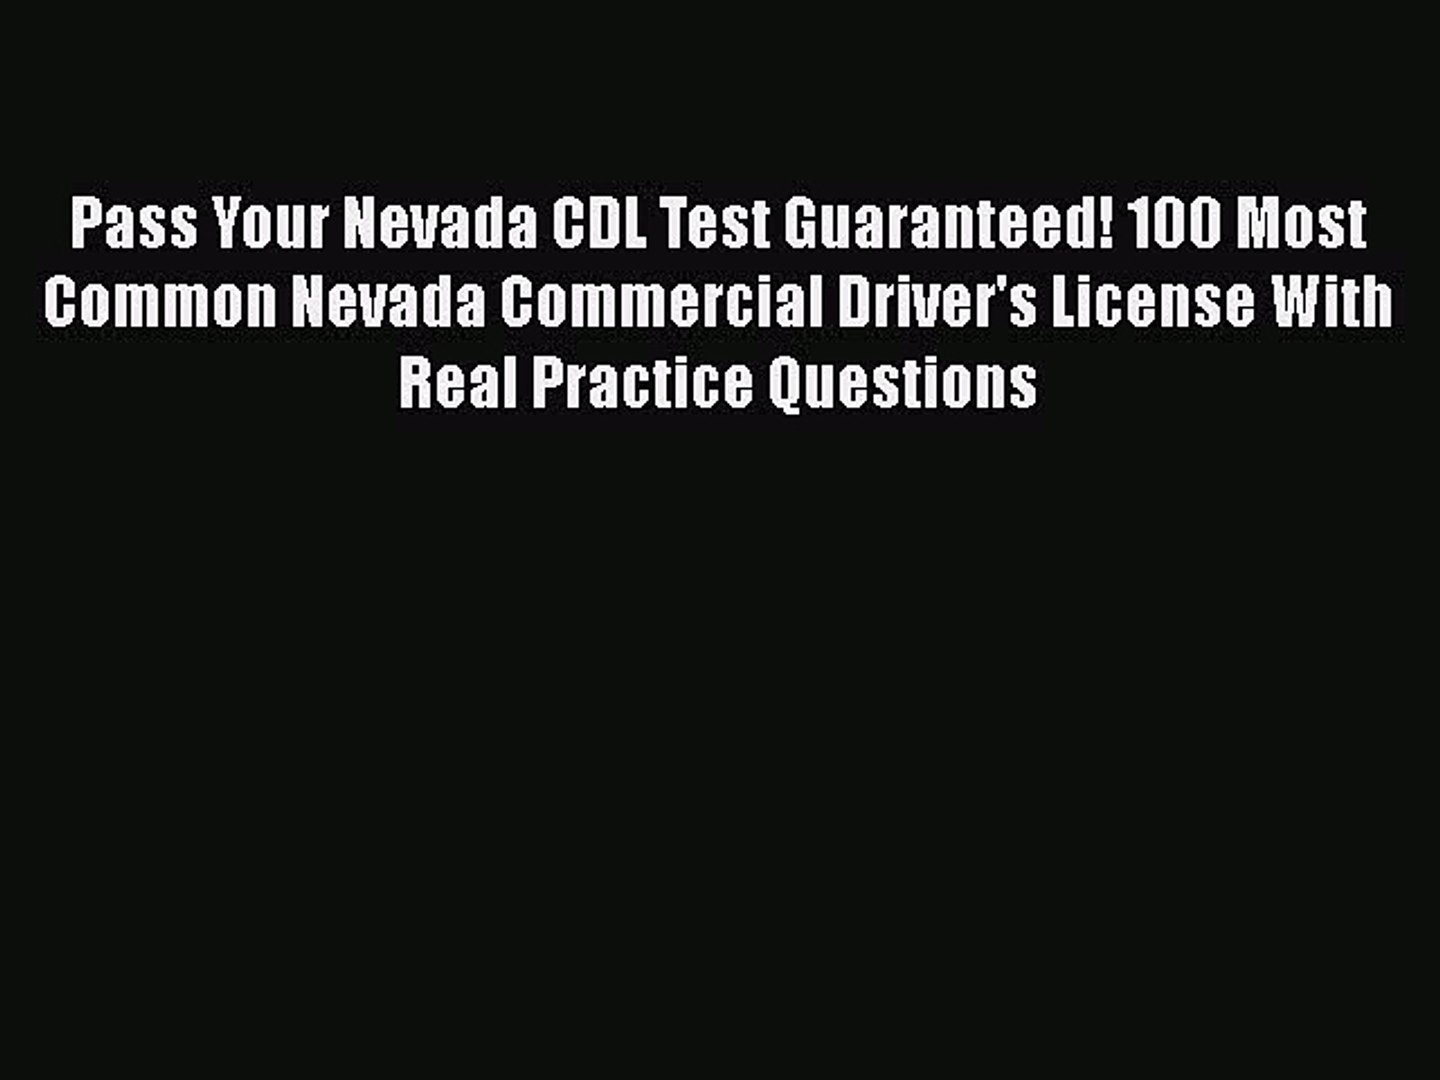 [PDF] Pass Your Nevada CDL Test Guaranteed! 100 Most Common Nevada Commercial Driver's License